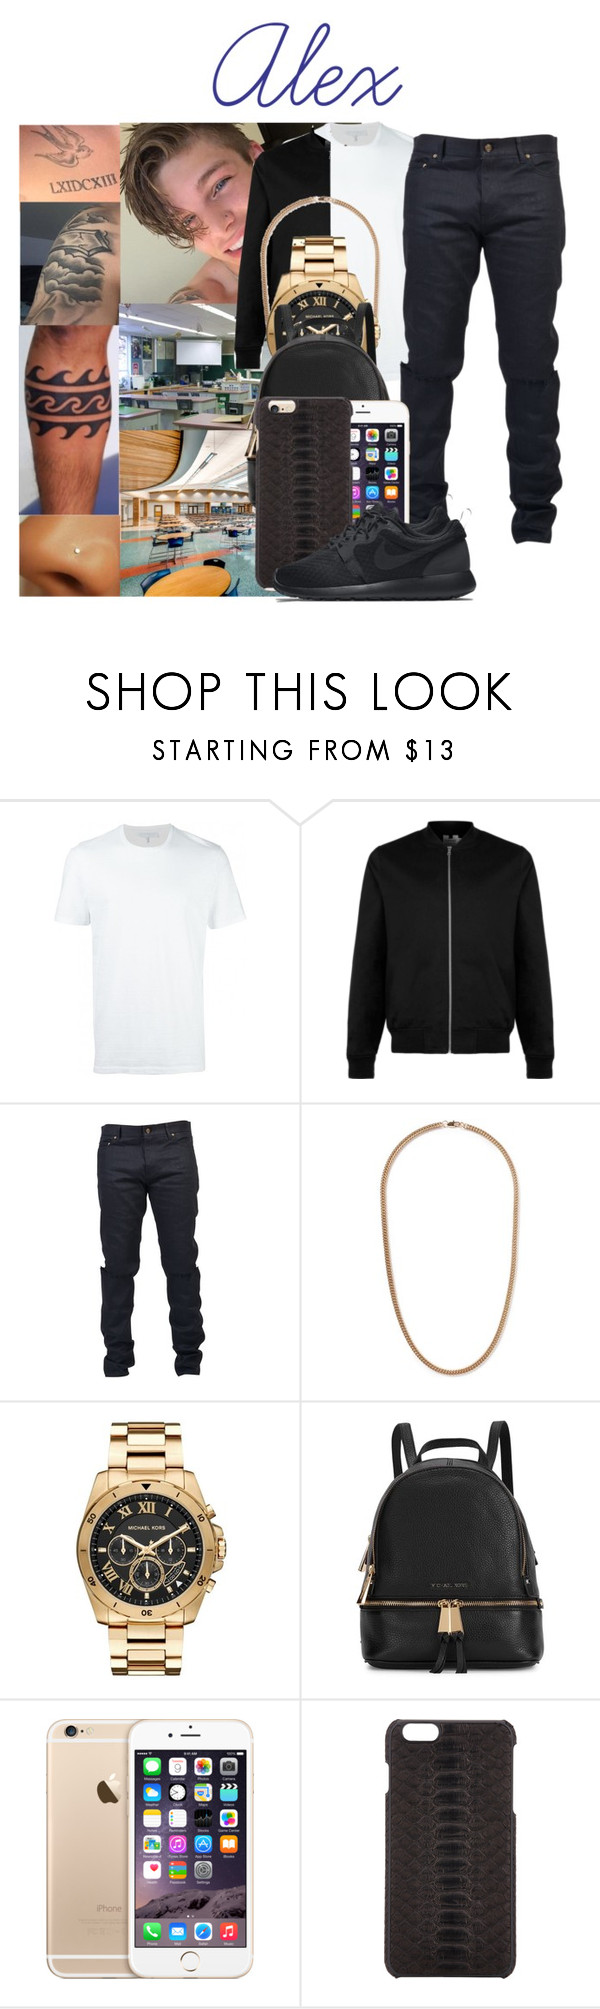 """Chapter 15 : Flirting 💎Read Description💎"" by cholastyle818 ❤ liked on Polyvore featuring Odette, Neil Barrett, Topman, Yves Saint Laurent, Michael Kors, ADOPTED, NIKE, men's fashion and menswear"